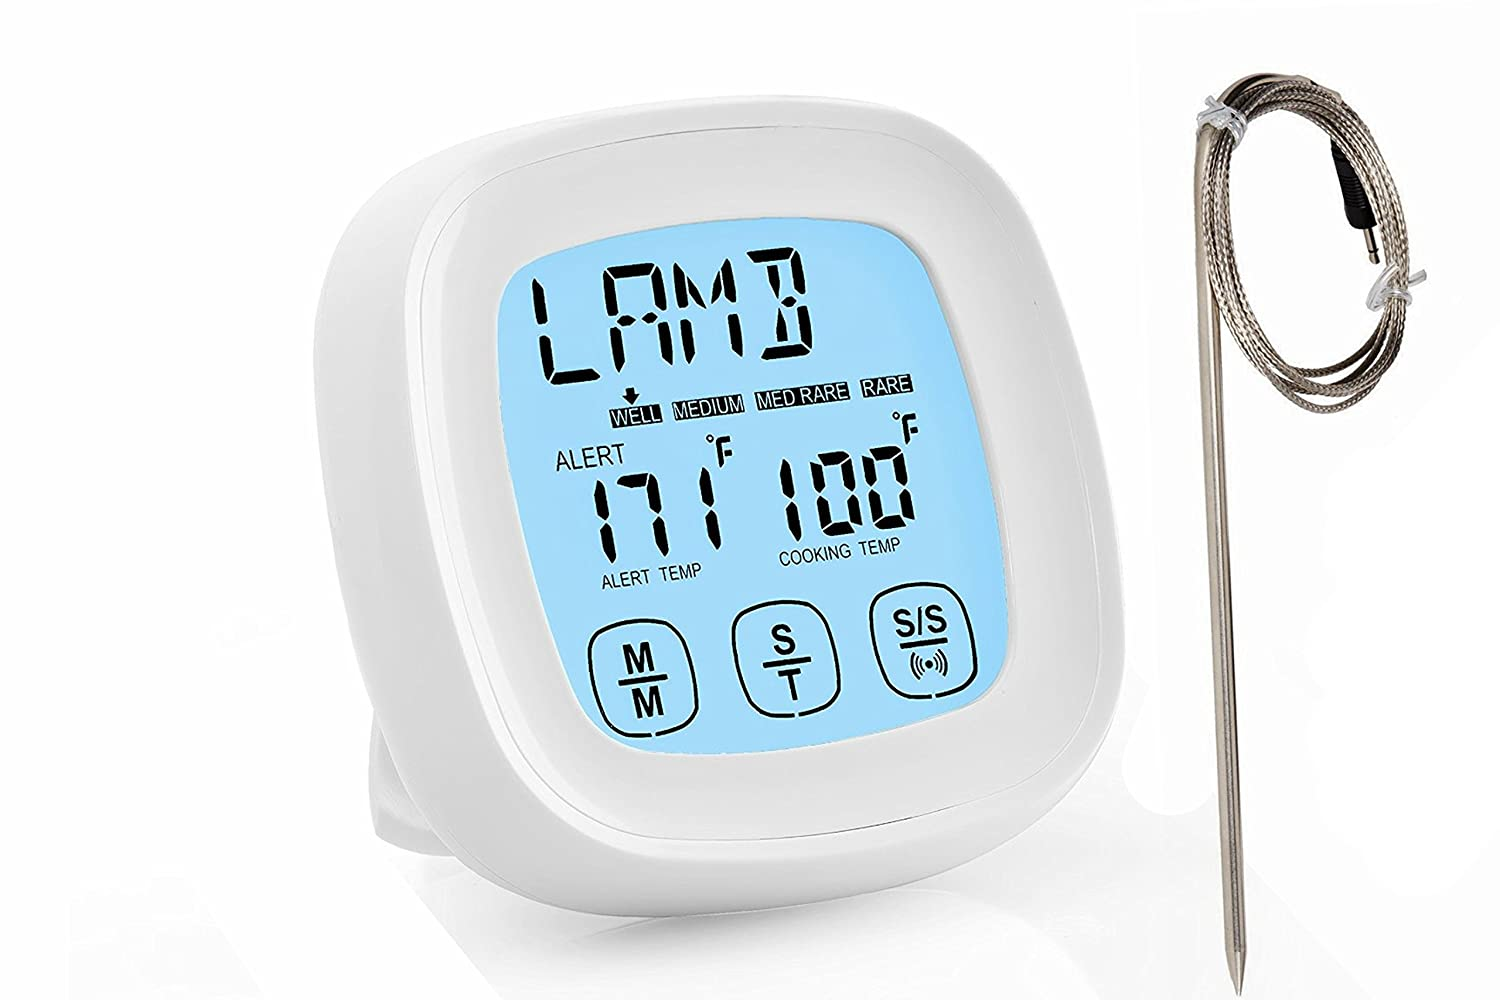 Best Digital Oven Meat Thermometer | Stainless Steel Probe - Instant Read | Kitchen TIMER | Pot Cooking, Microwave, Baking Kitchen Kings